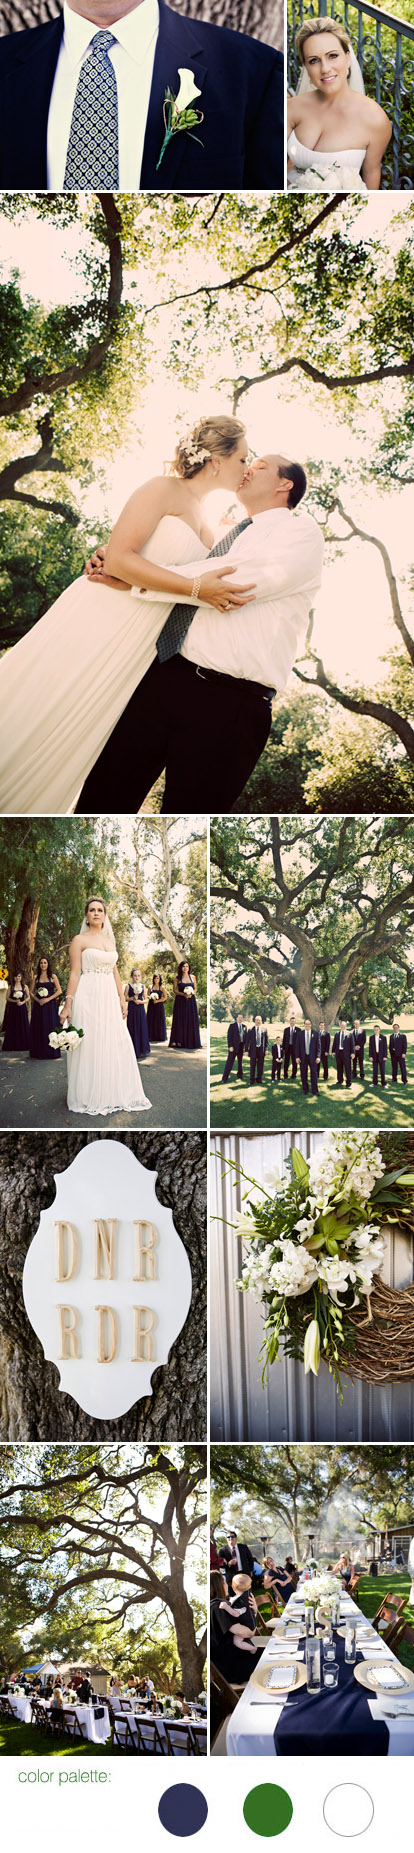 California backyard barbecue wedding, navy blue and emerald green wedding color palette, images by Jagger Photography